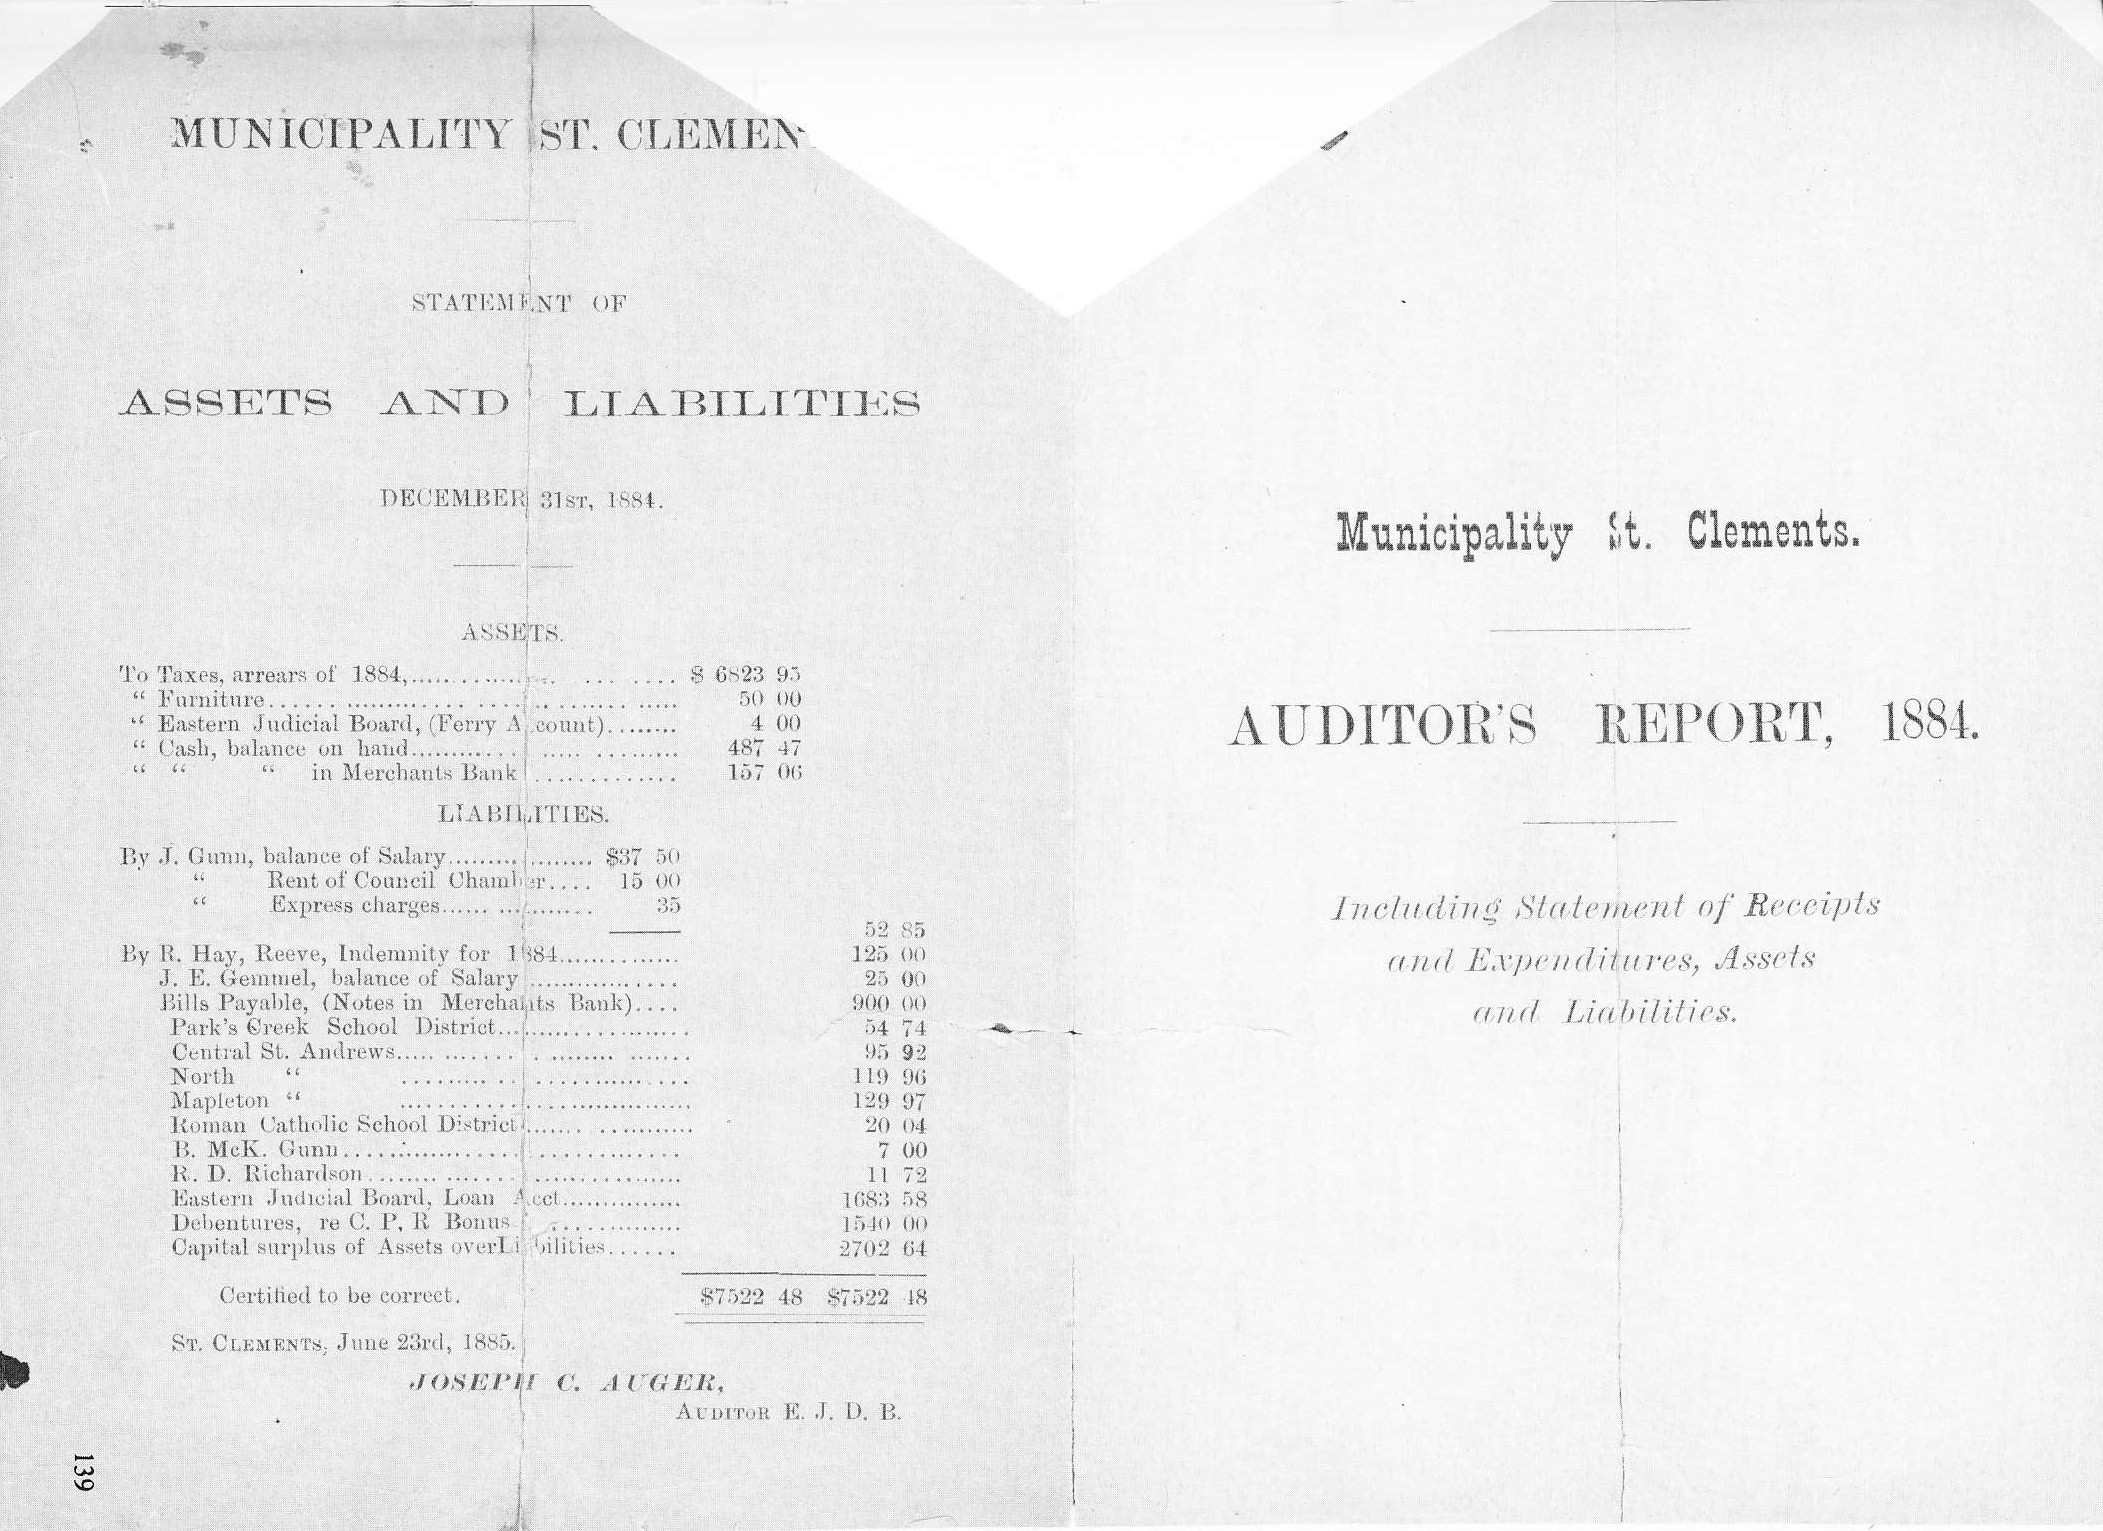 Auditors Report 1884